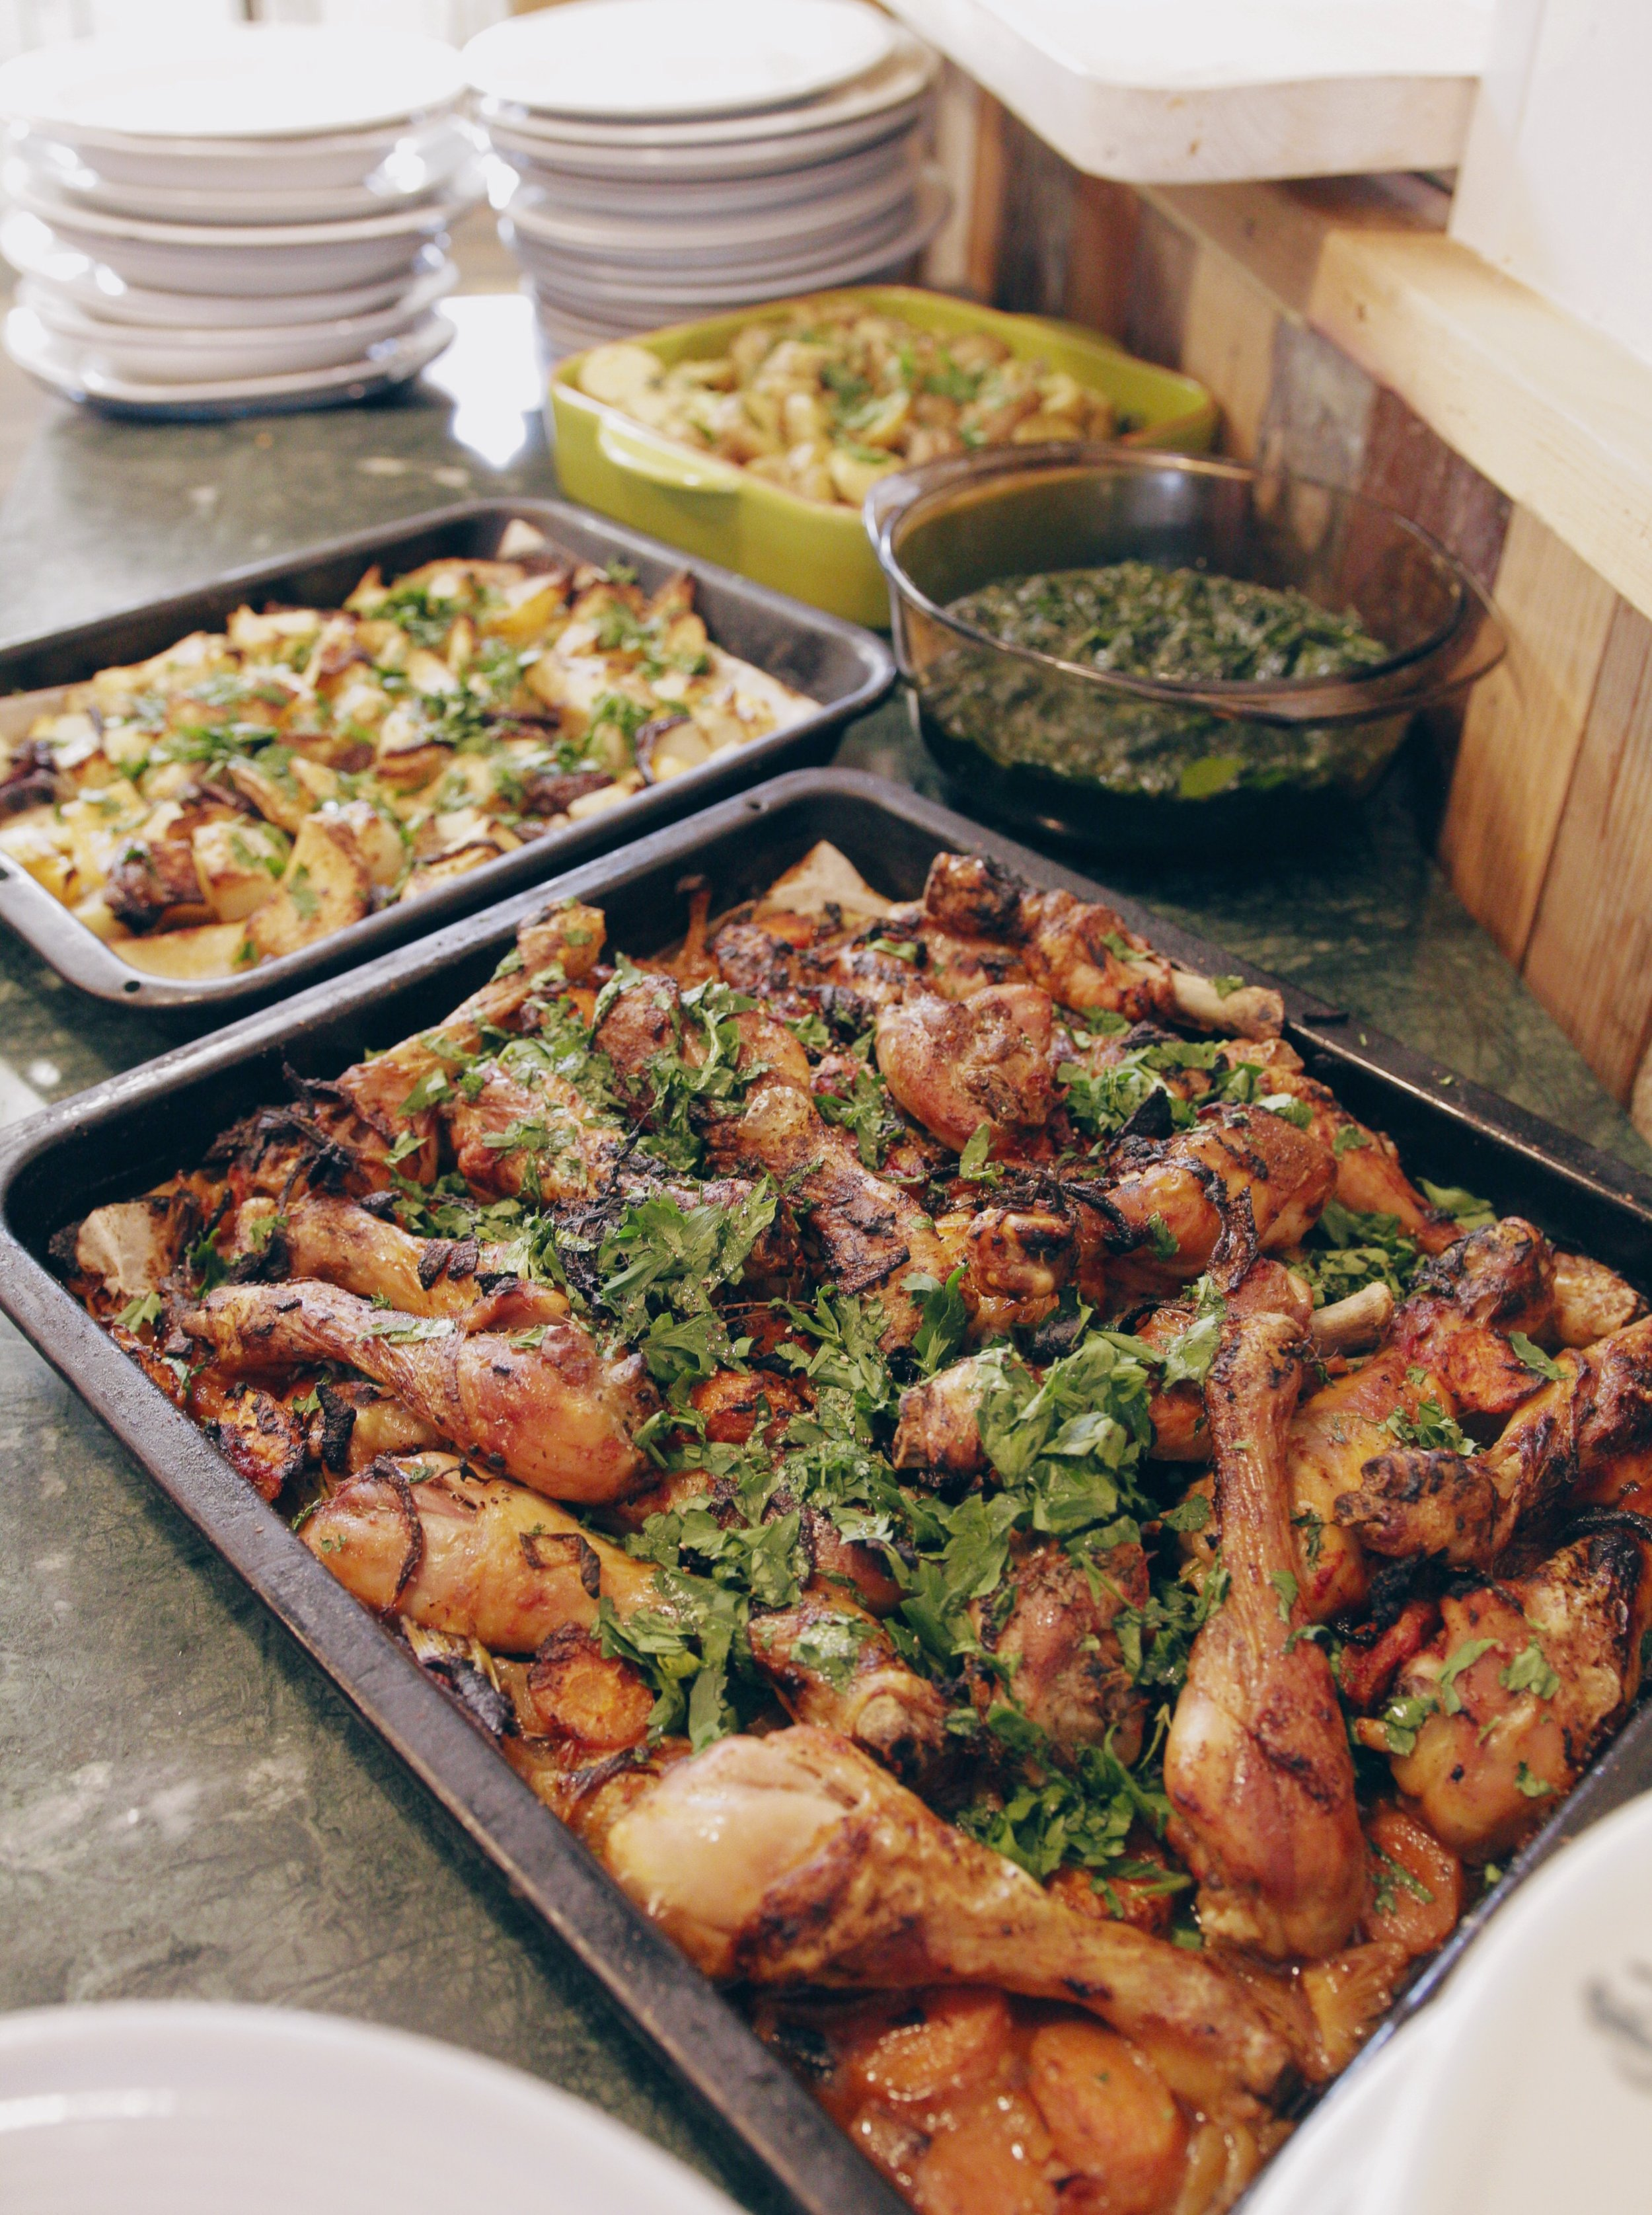 Sicilian chicken fresh out the oven.  Photography by Vlad Muko.